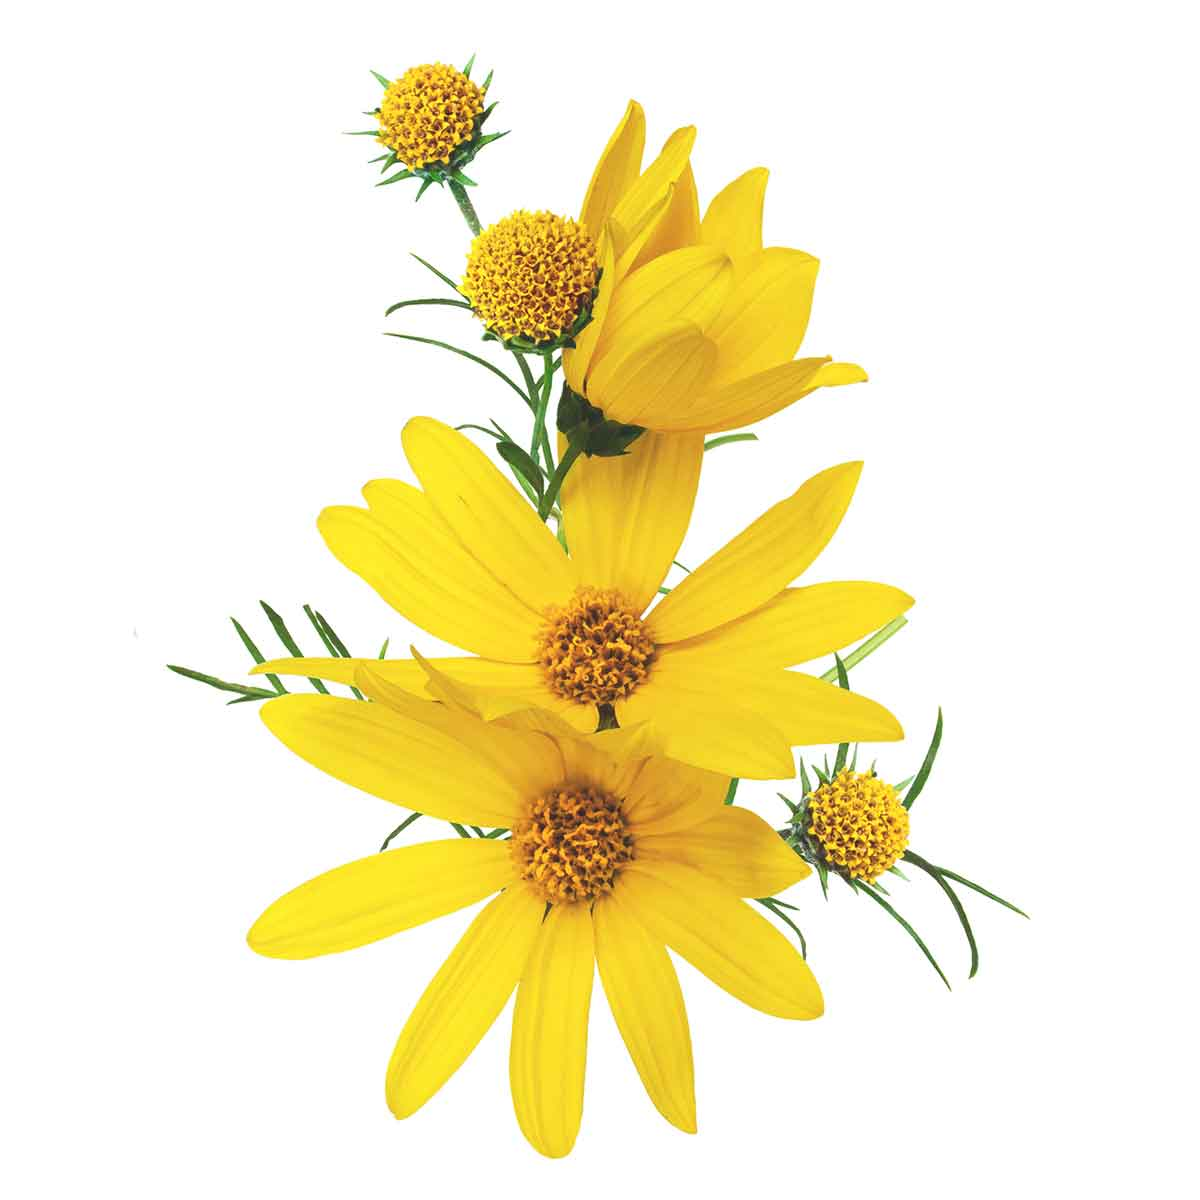 Relief contains botanical extracts found in camphorweed, producing a naturally musky flavor and aroma. -